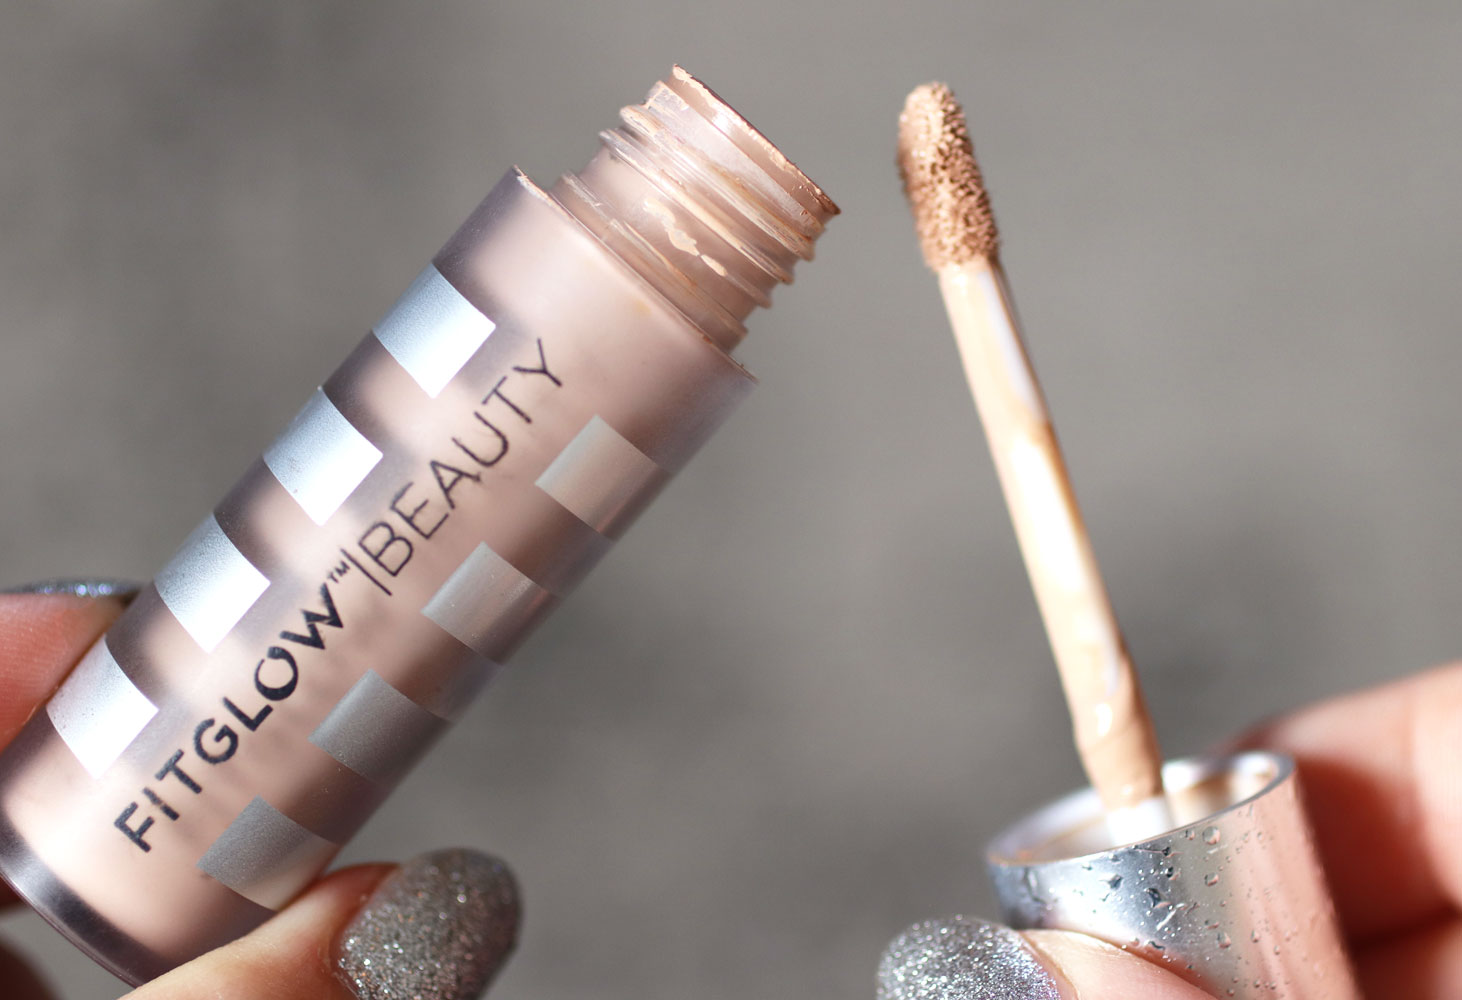 Best cruelty free concealers guide - Fitglow Beauty concealer review